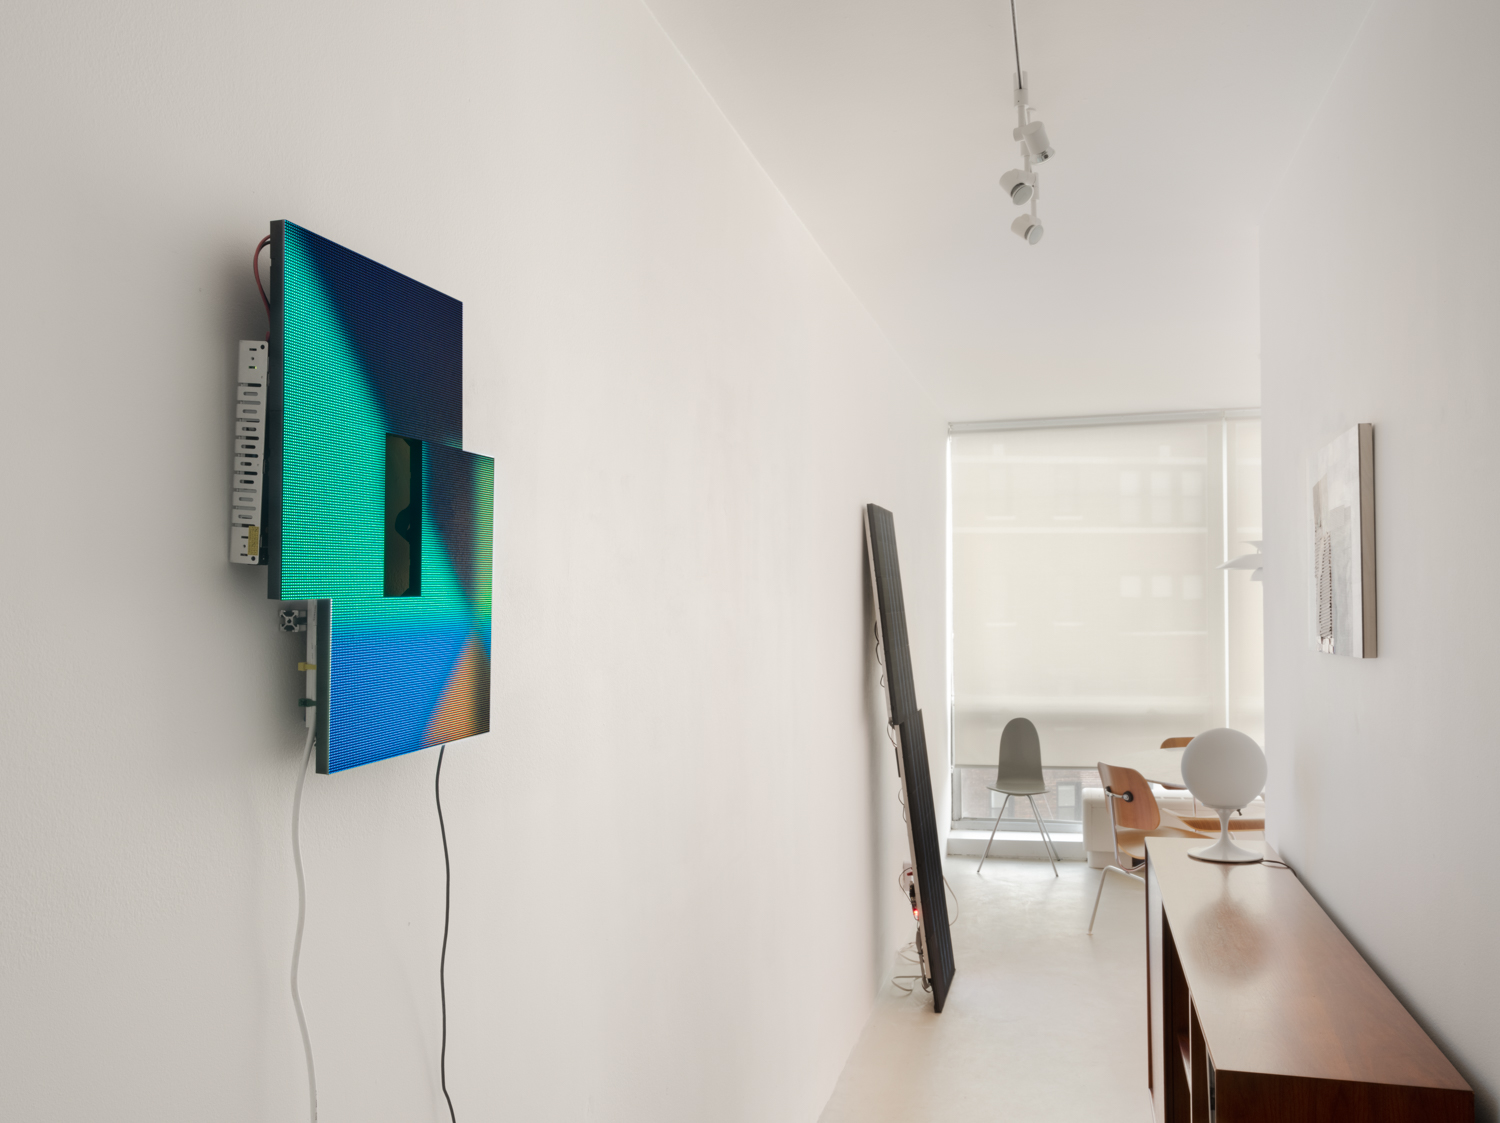 Luke Murphy 2019 Installation View Shane Campbell Gallery, Lincoln Park